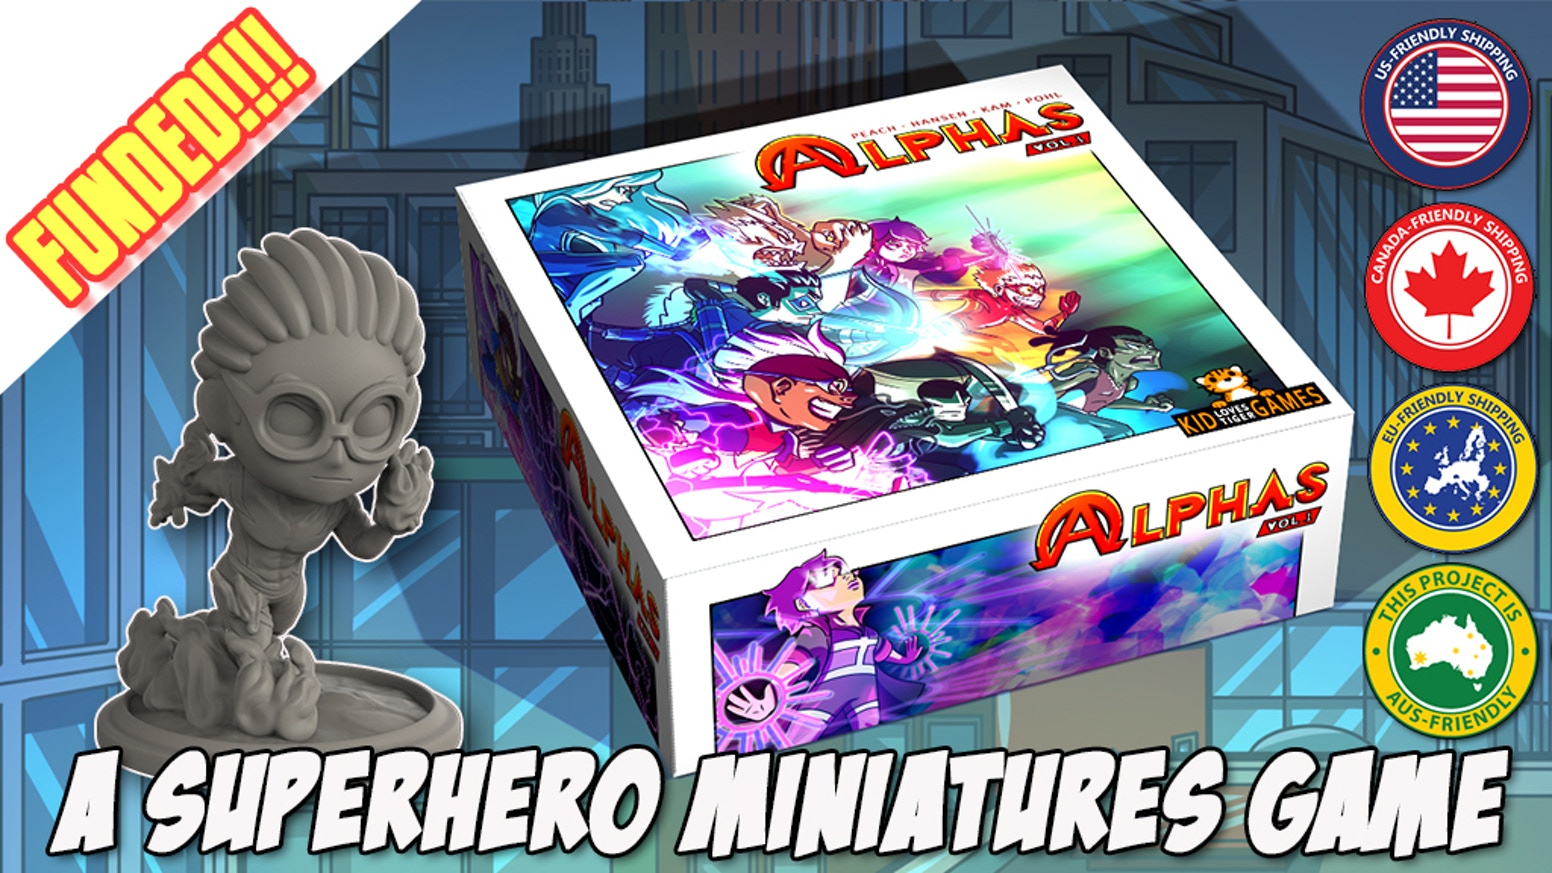 Alphas is a tactical superhero themed game with Graphic Novels, a Progressive Story, Objective Skirmishes & Highly Detailed Miniatures!